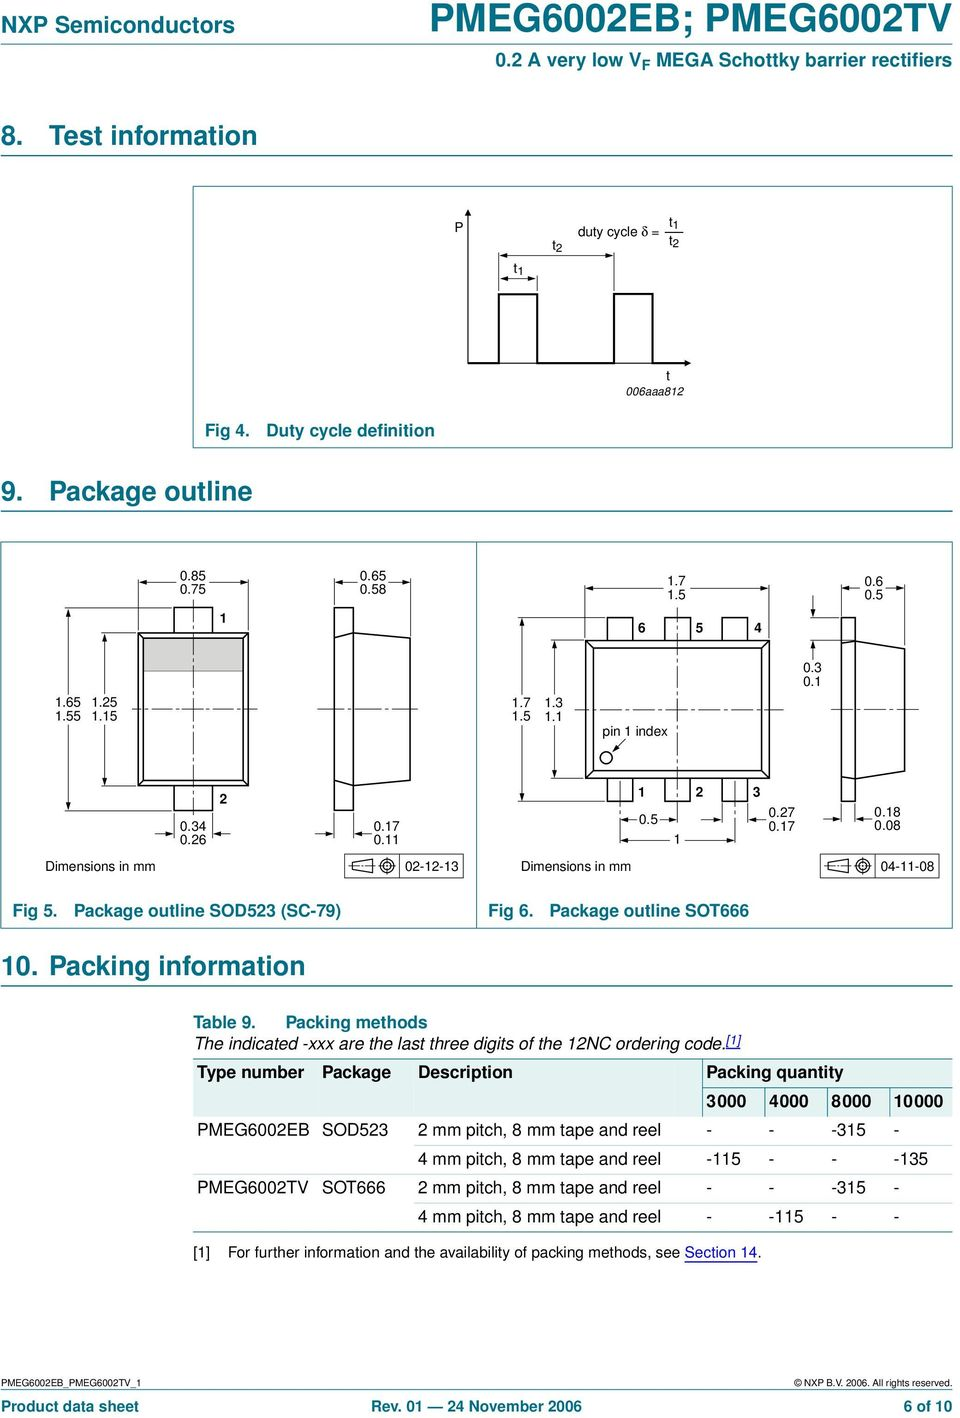 Packing information Table 9. Packing methods The indicated -xxx are the last three digits of the 12NC ordering code.